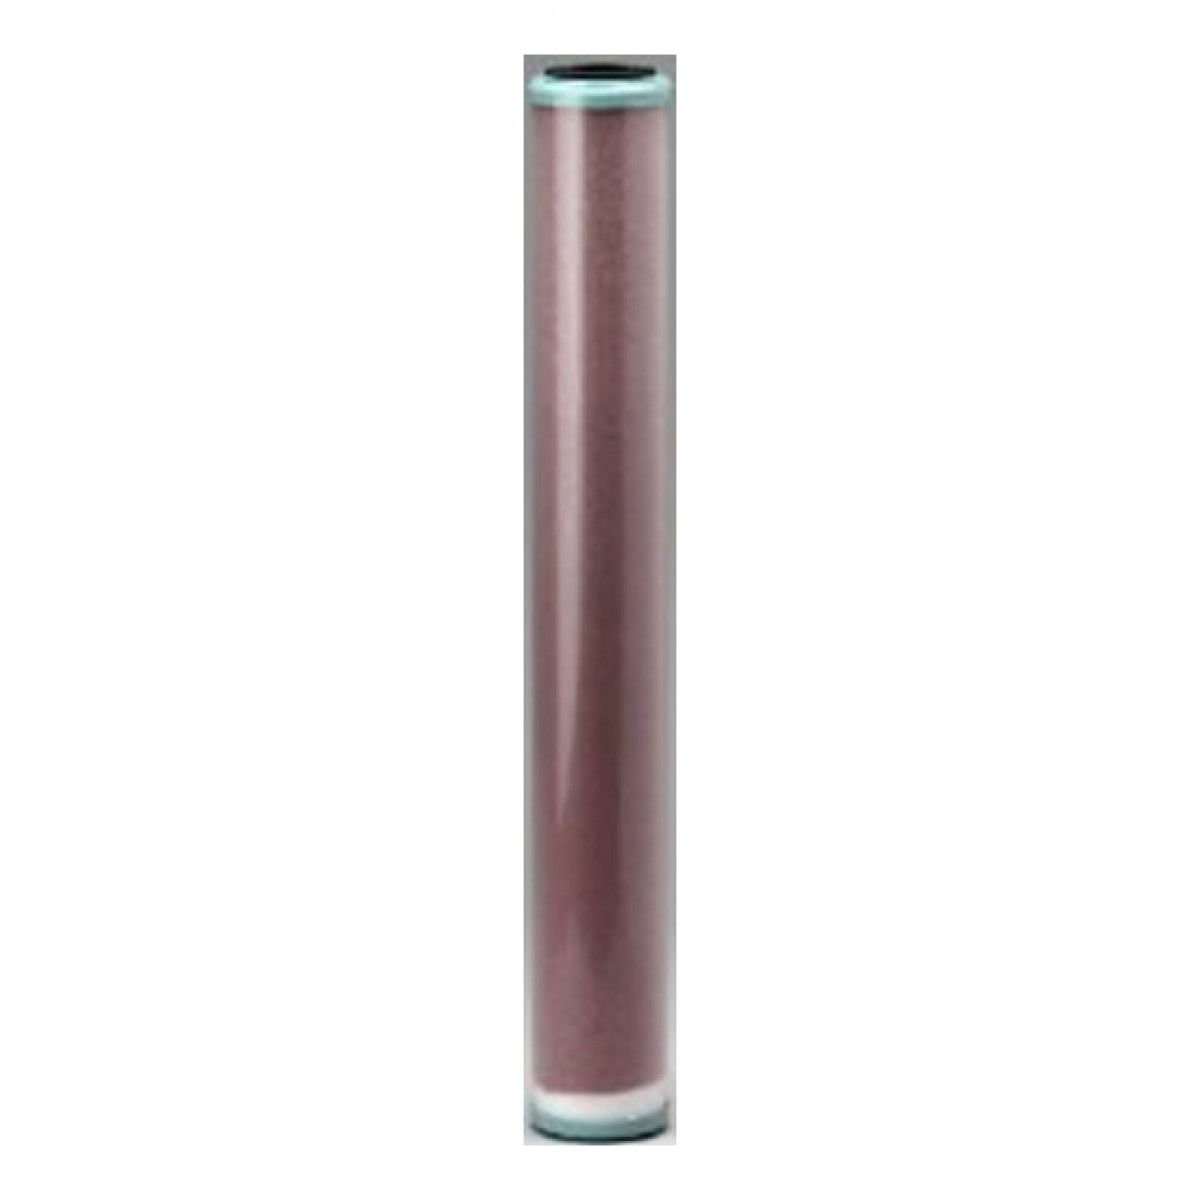 Pentek Ws 20 Water Softening Water Filter